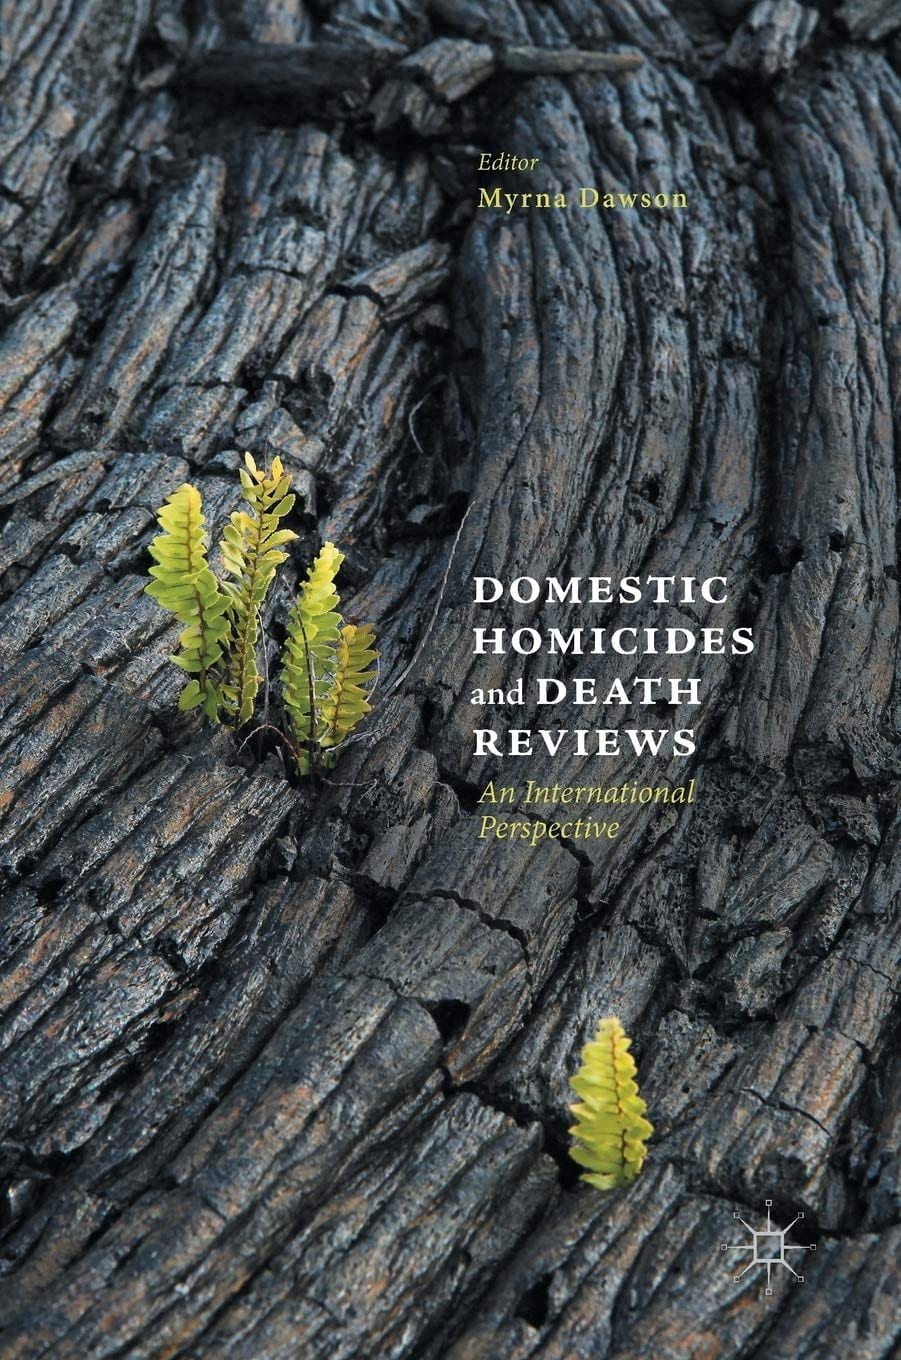 Domestic Homicides and Death Reviews Book Cover.